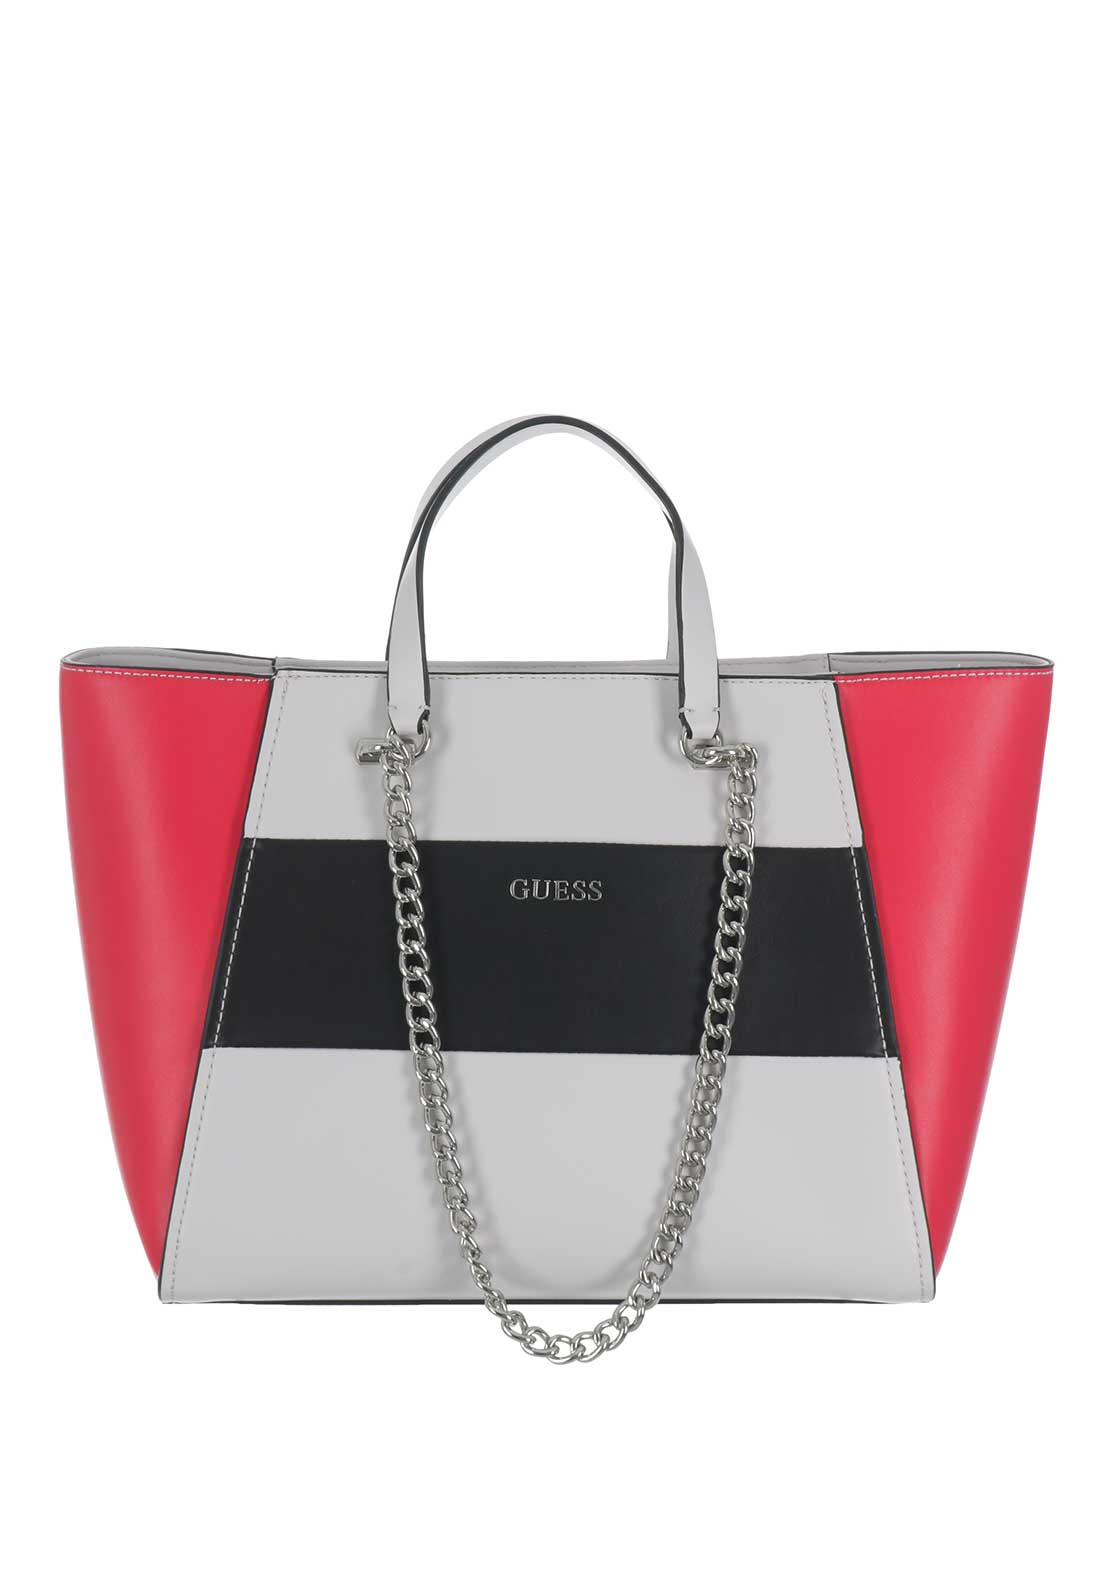 Guess NIkki Chain Tote Bag, Red Multi